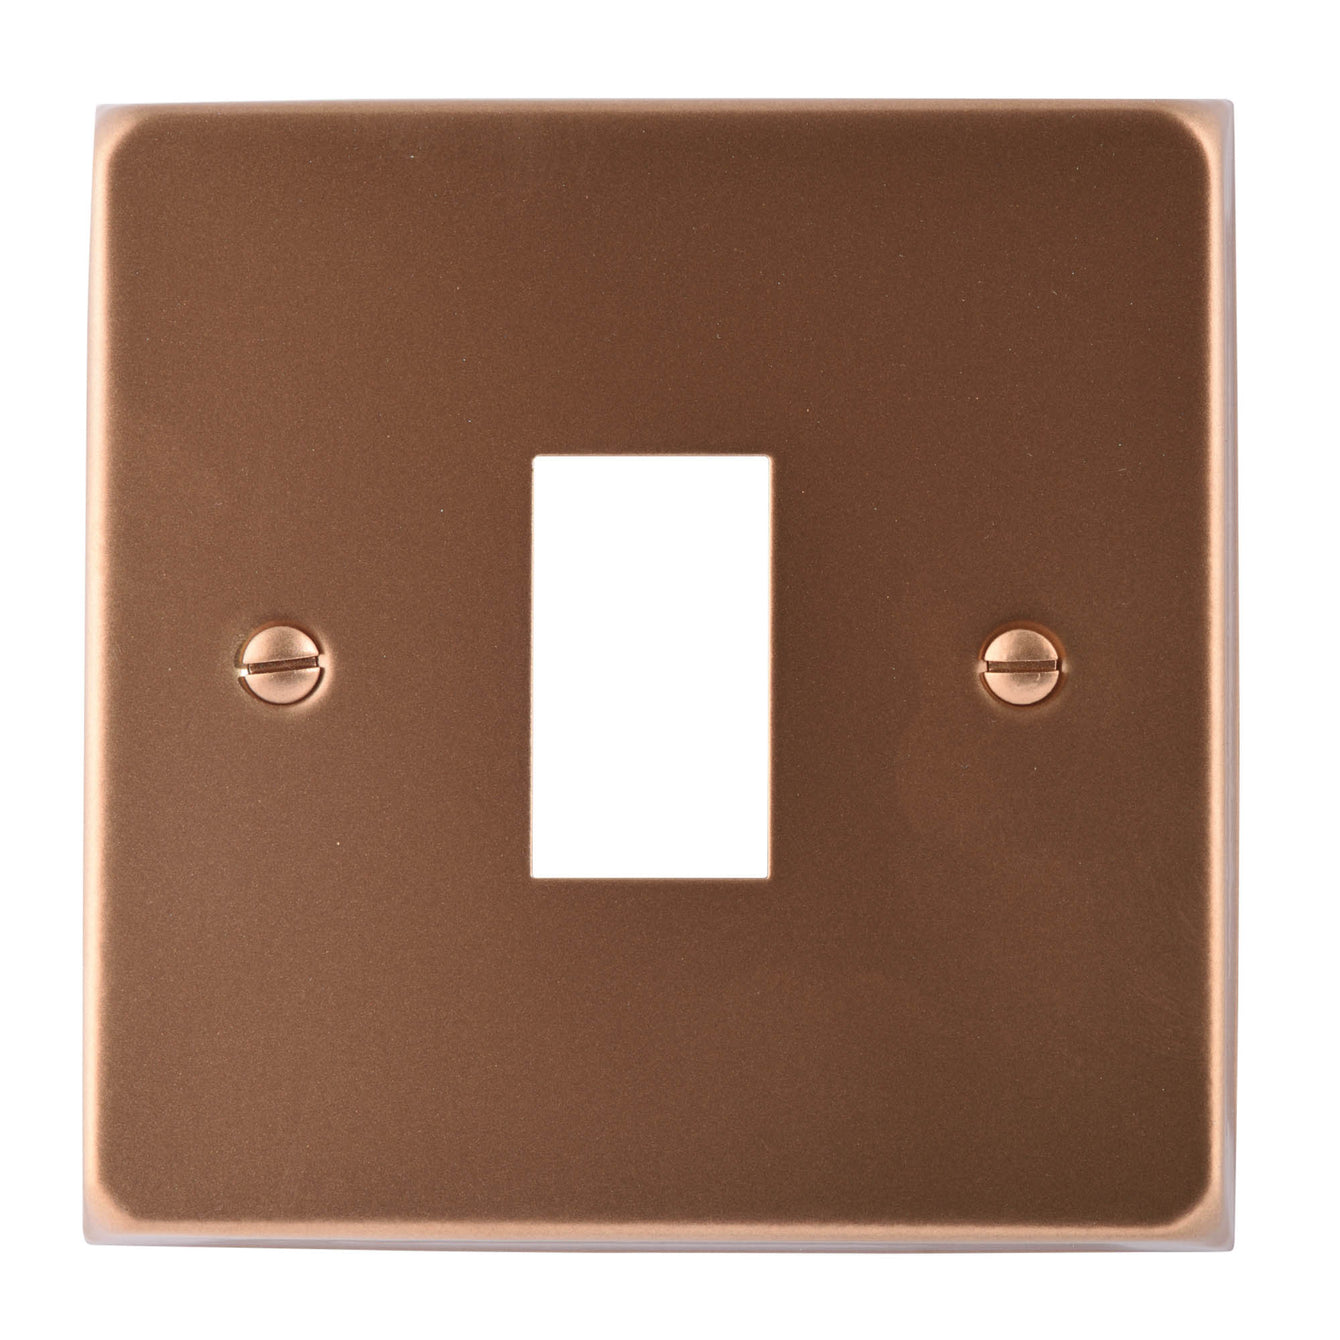 ElekTek Light Switch Conversion Cover Plate Single Victorian - Buy It Better Pink